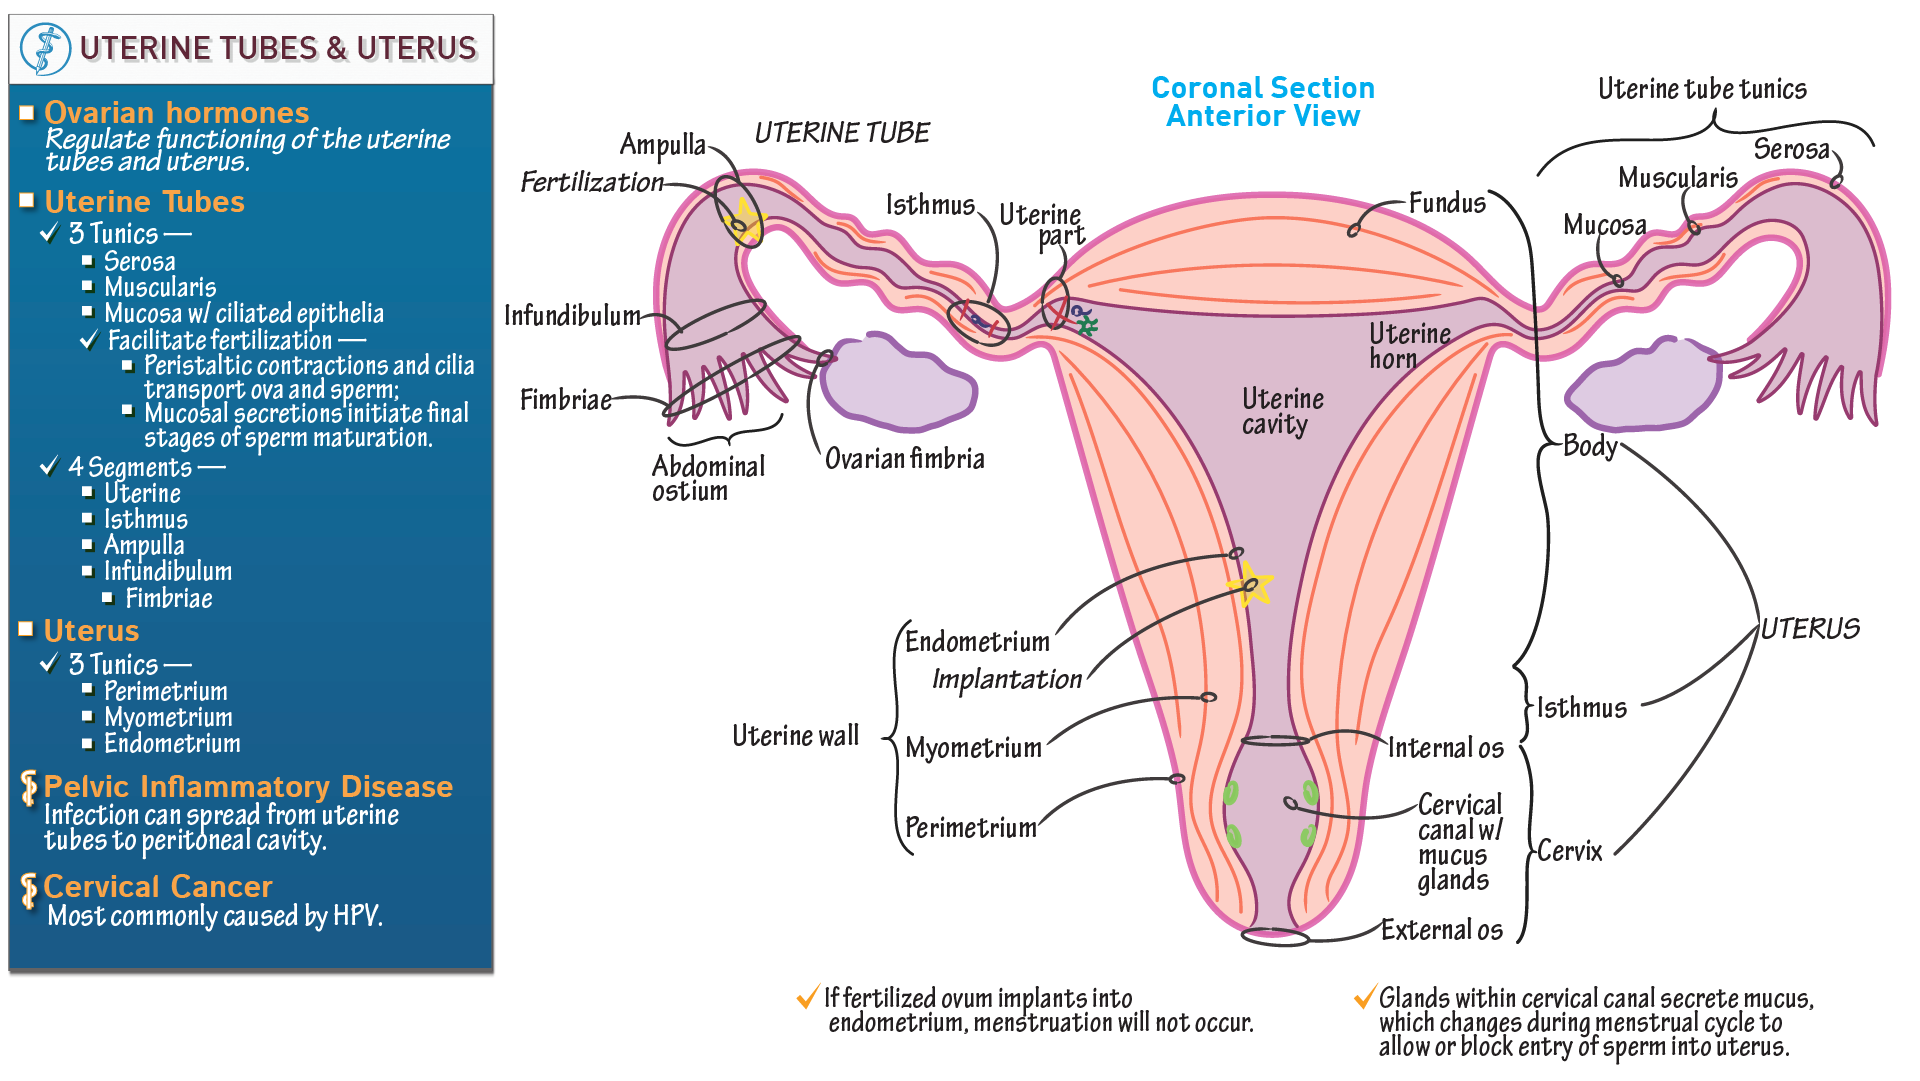 Gross Anatomy: Uterus and Uterine Tubes | Draw It to Know It